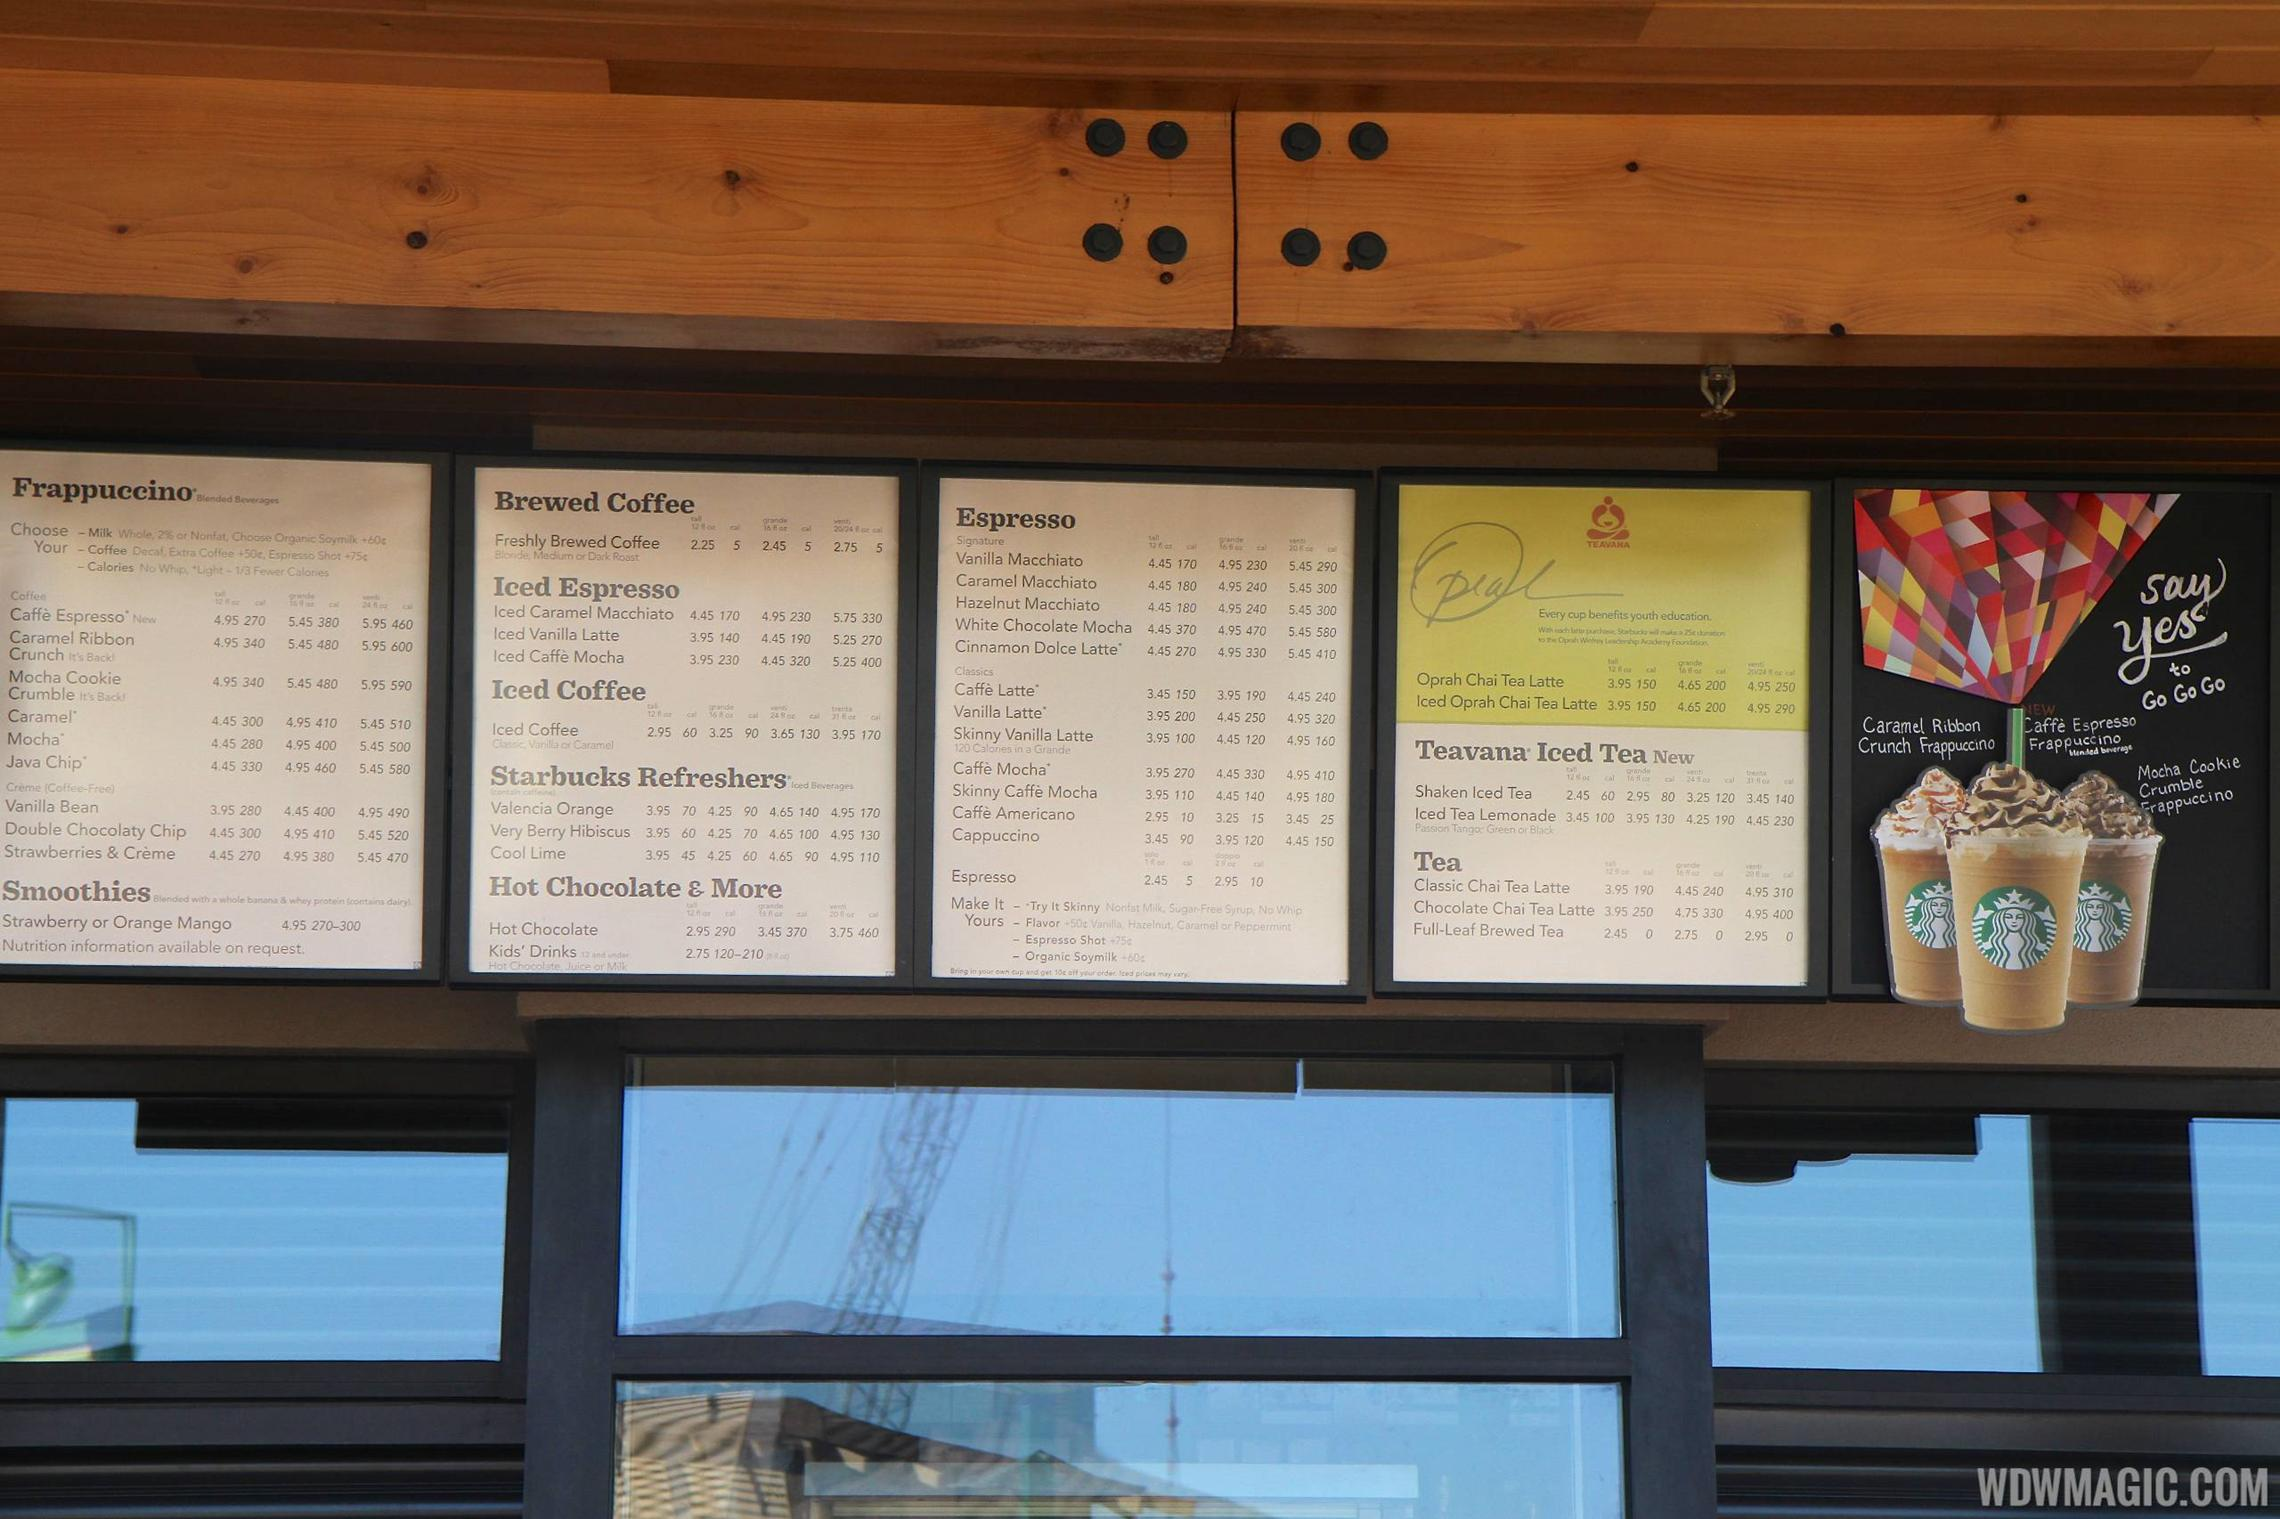 Starbucks Marketplace menu